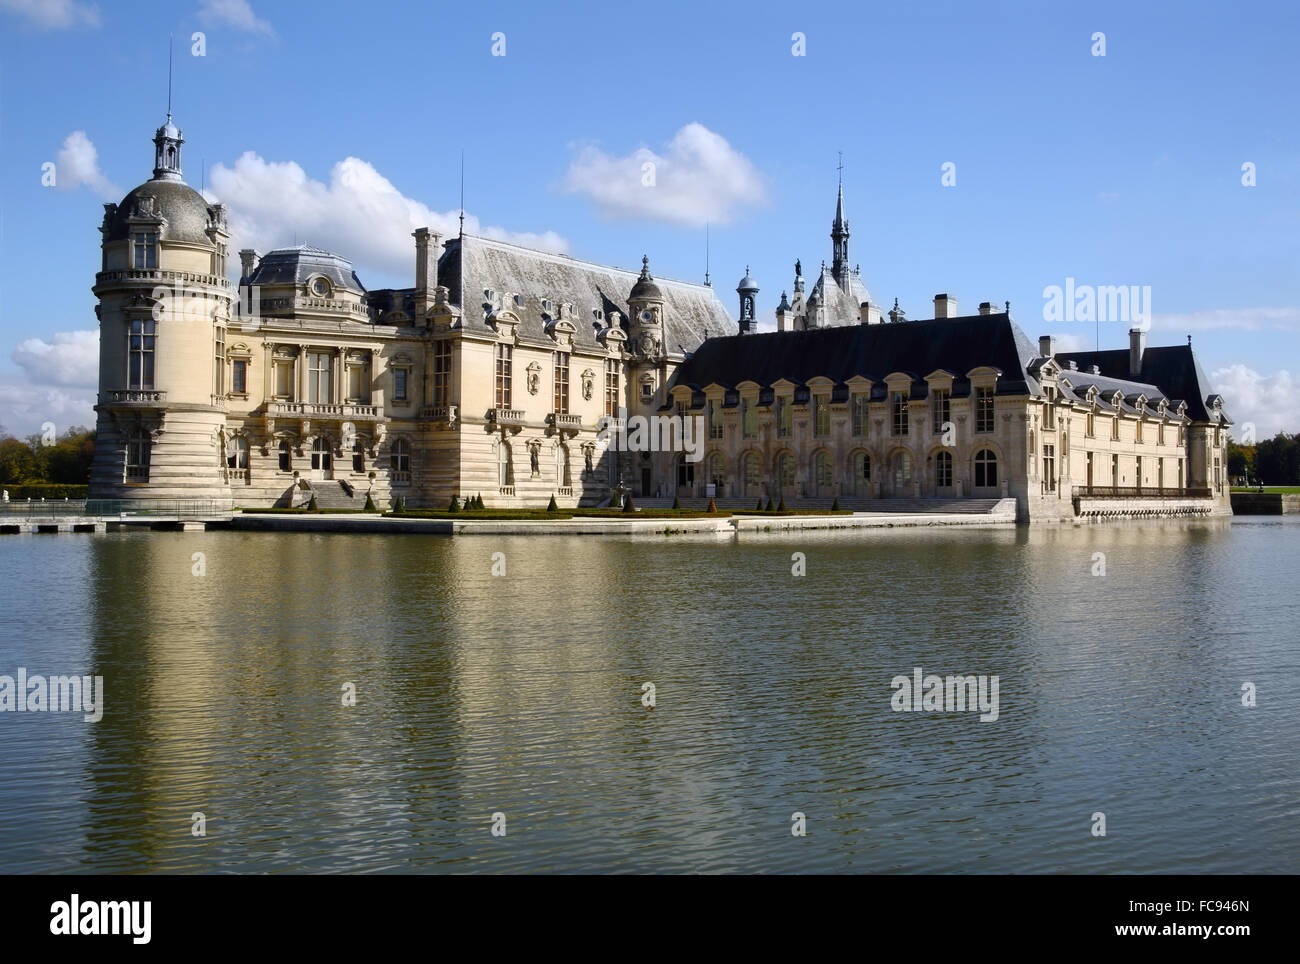 Chateau Chantilly across the moat, Chantilly, Oise, France, Europe - Stock Image